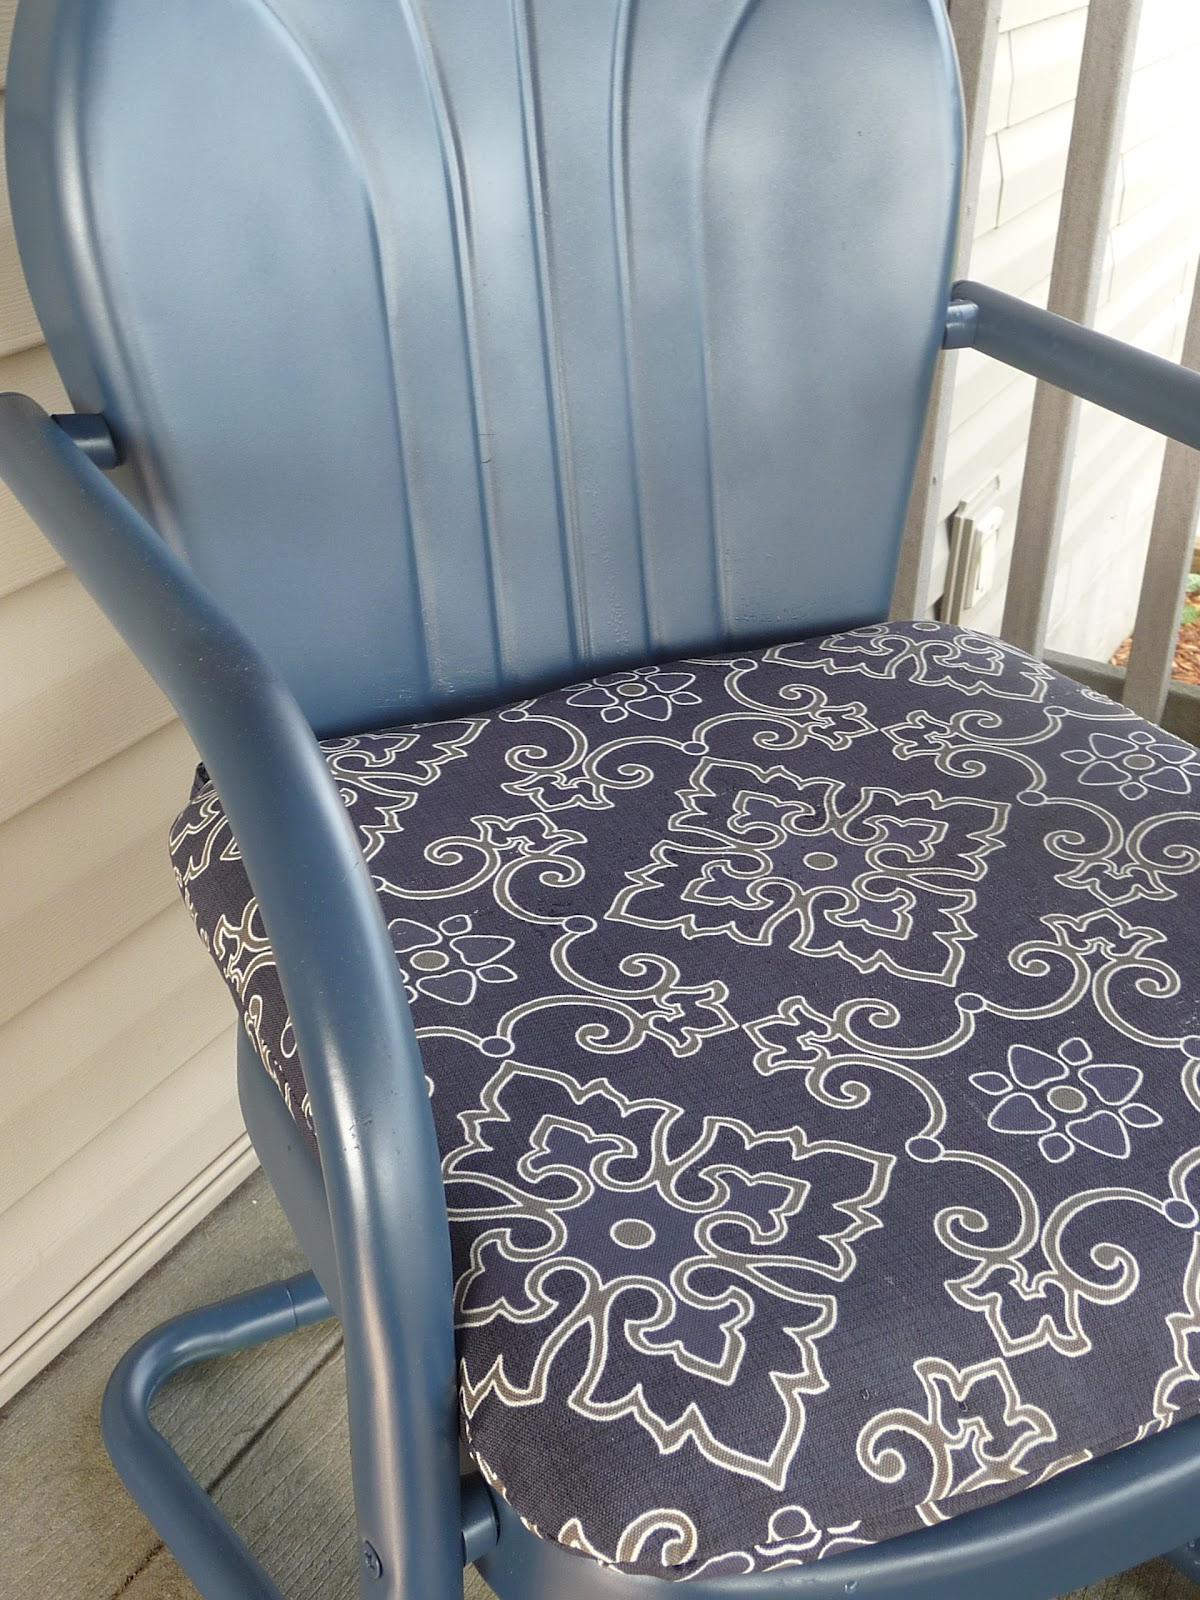 Old Metal Chairs Baby Bounce Chair Making A Home Vintage Redo